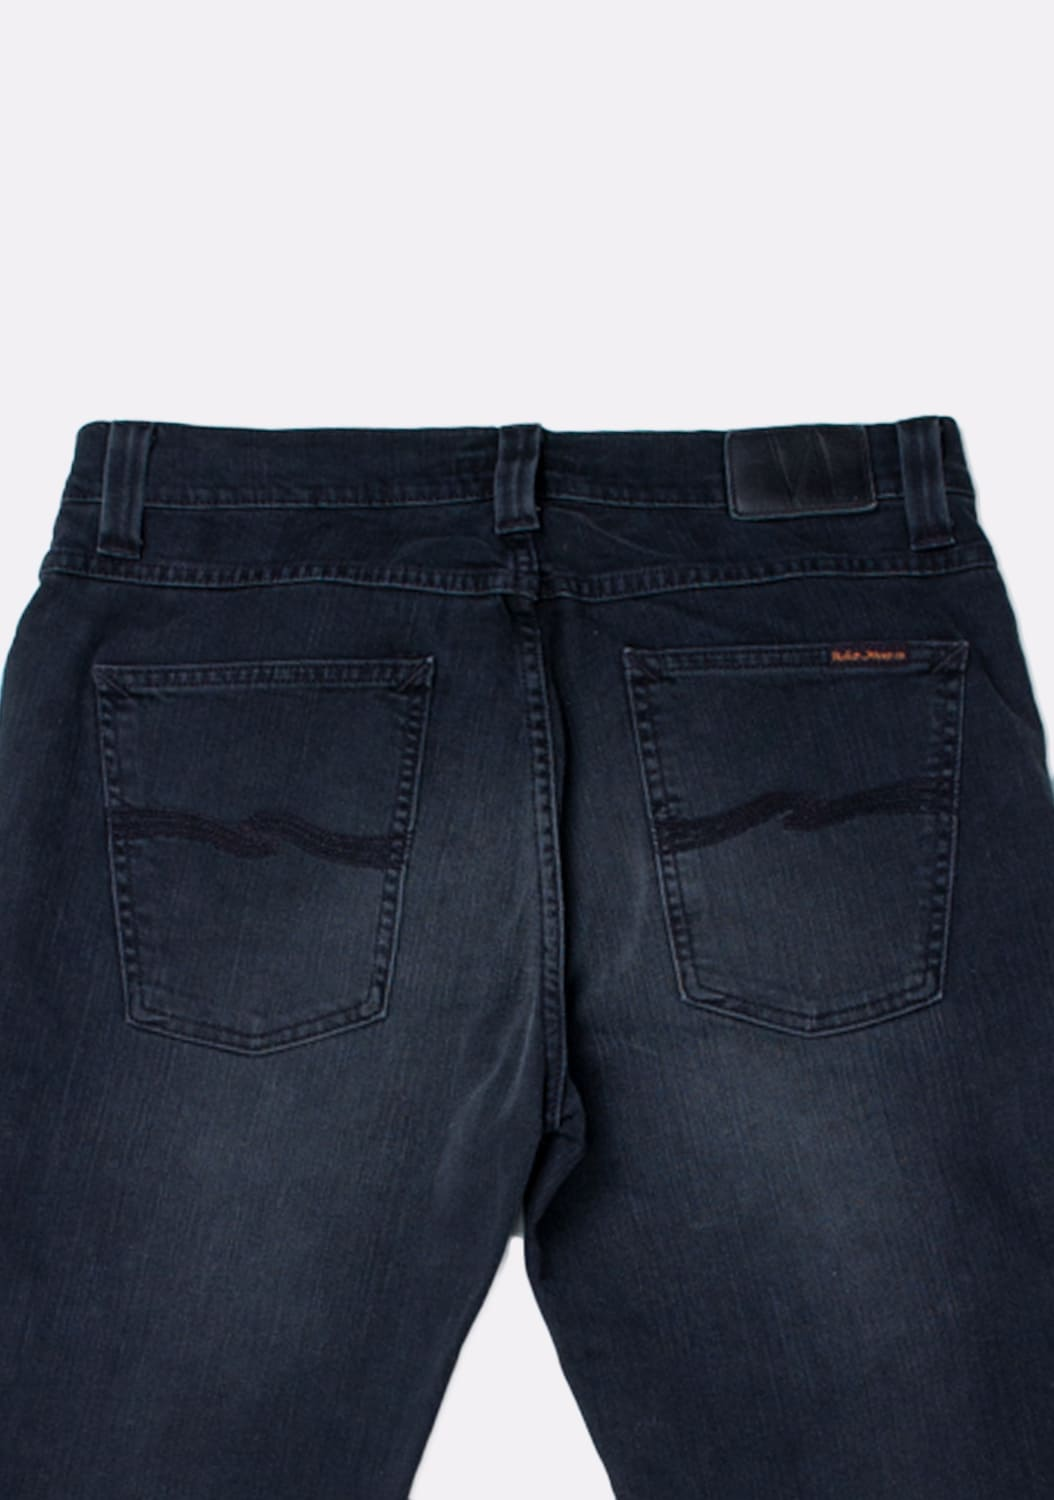 Nudie-Jeans-Lean-Dean-Black-Changes-34-34-juodi-dzinsai (6)